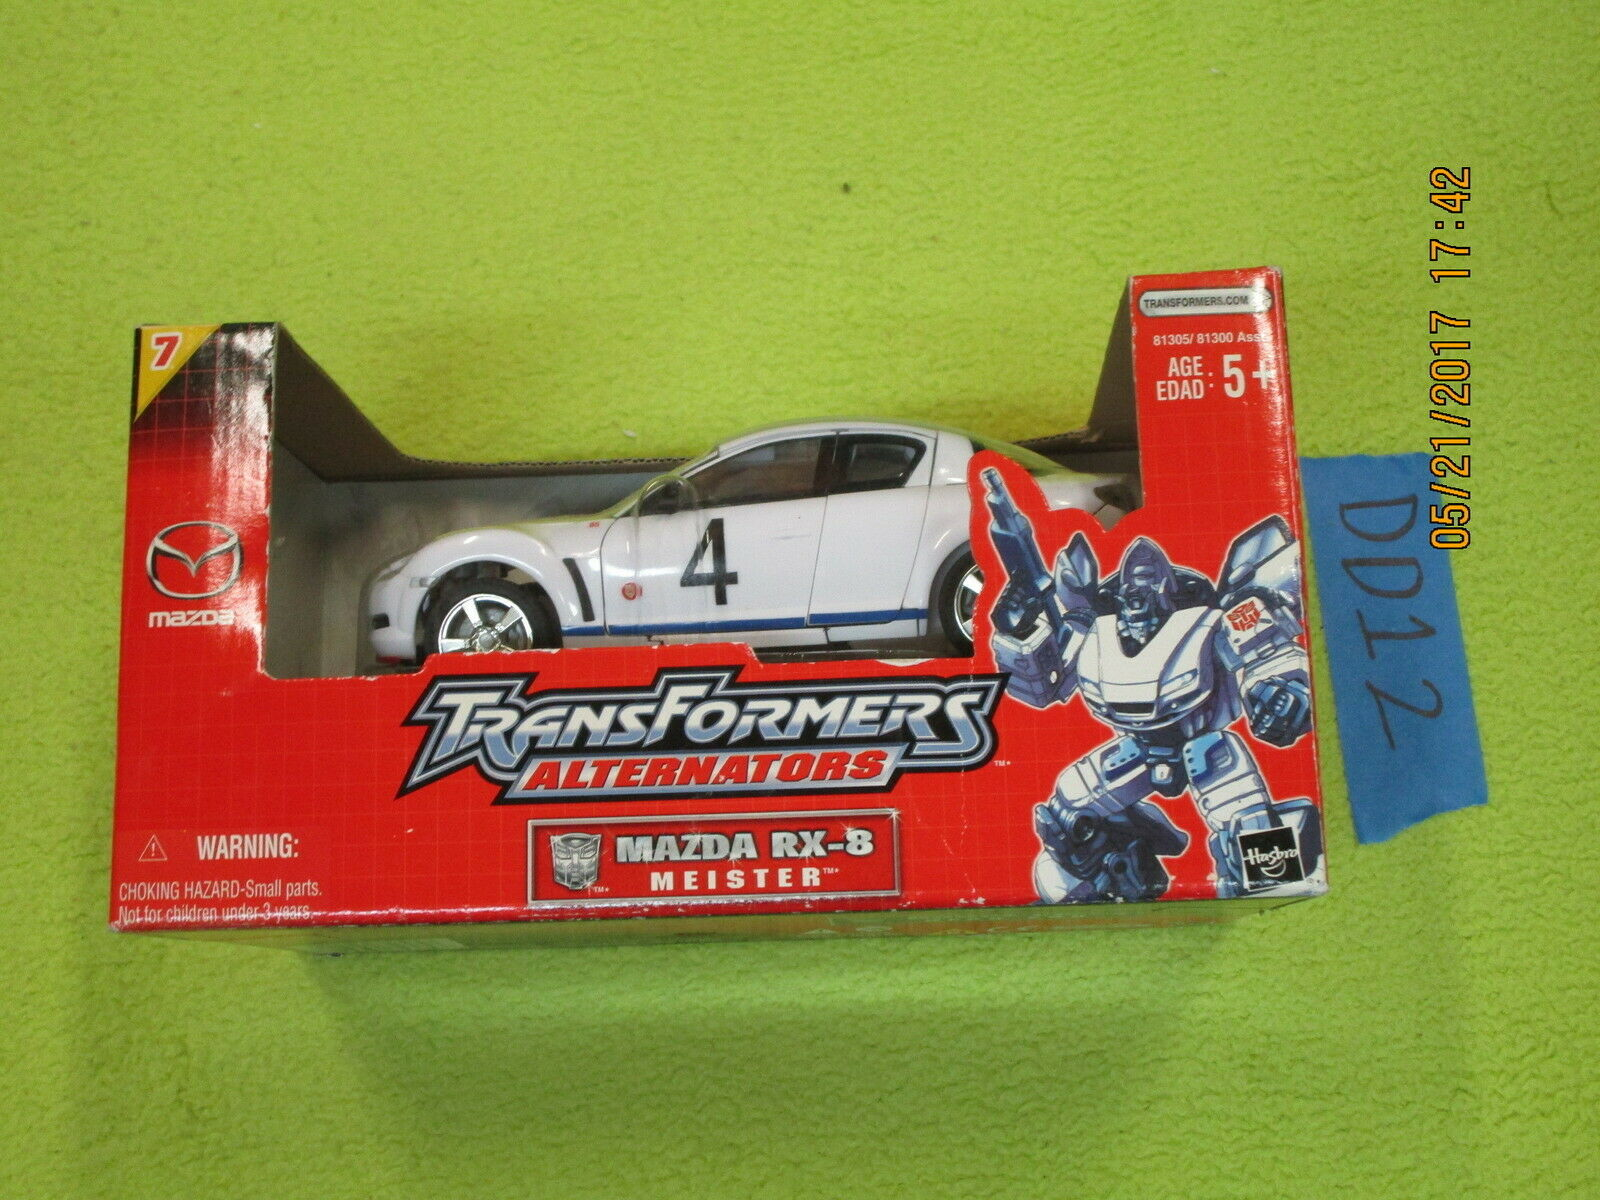 TRANSFORMERS ALTERNATORS Lot Autobot Jazz avec reprolabels Meister MAZDA RX-8 Comme neuf IN BOX